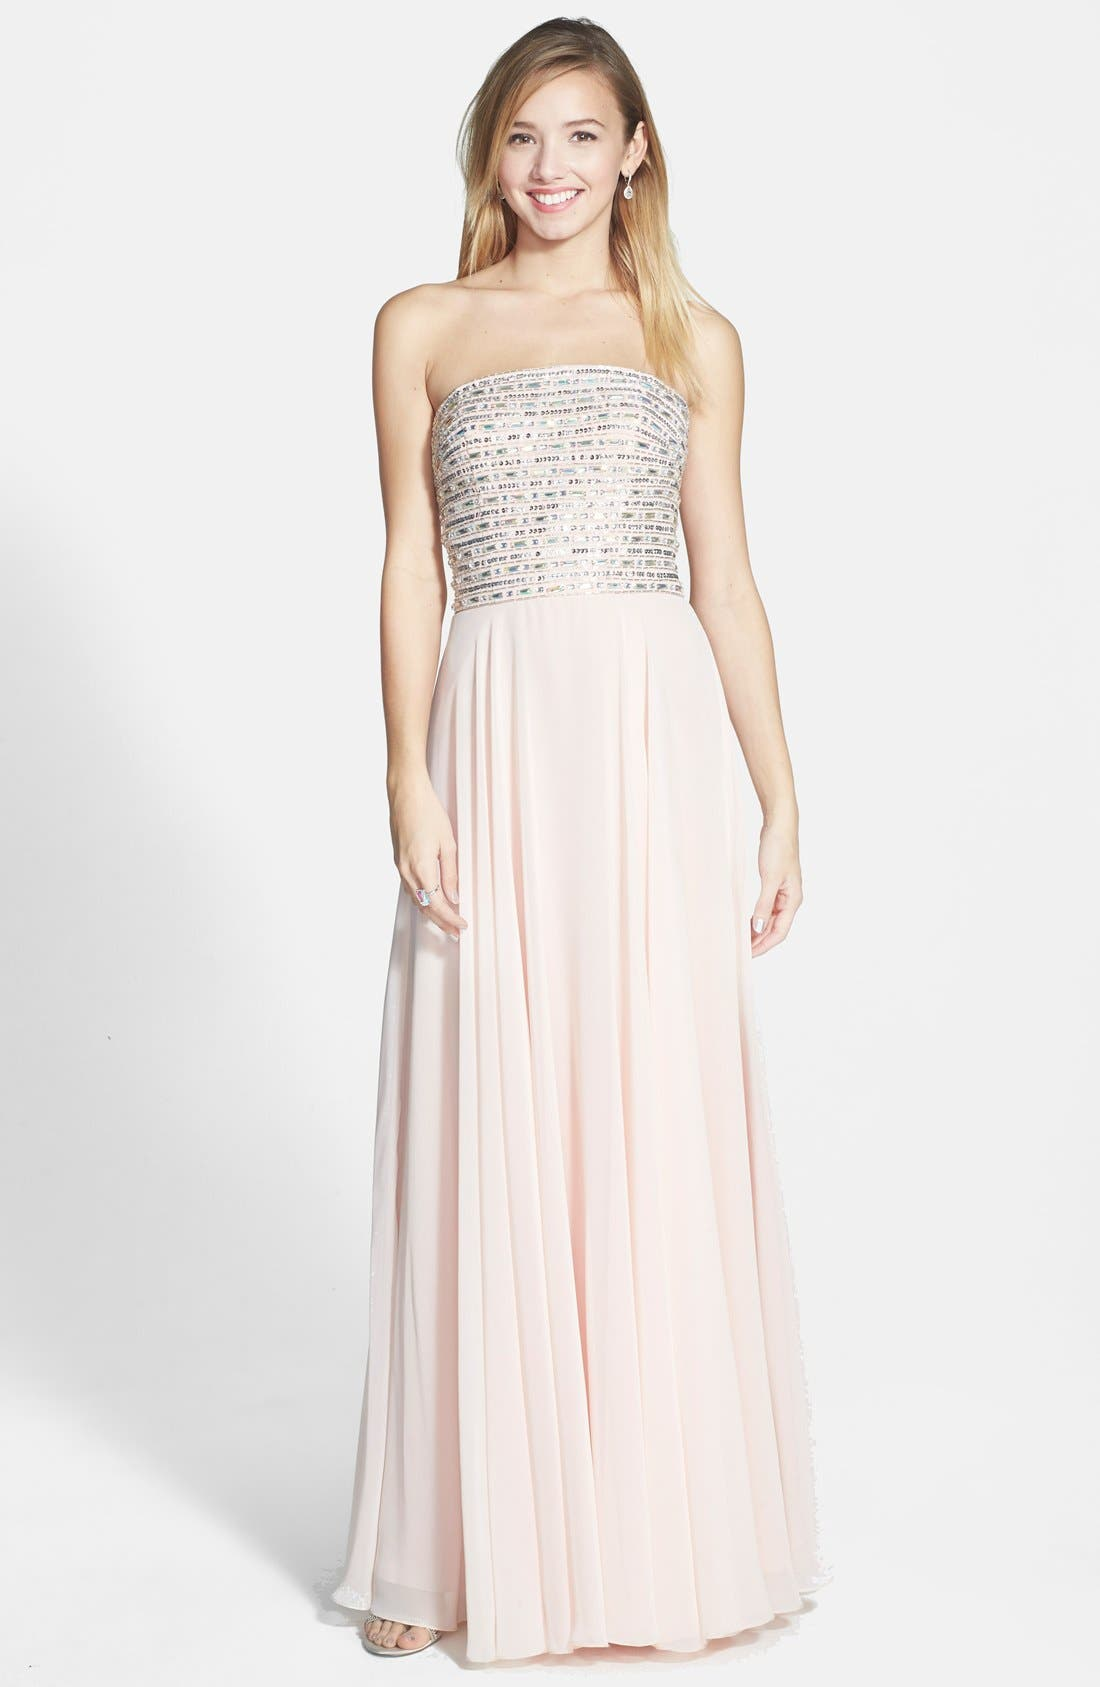 Main Image - Xscape Lace-Up Back Embellished Bustier Chiffon Gown